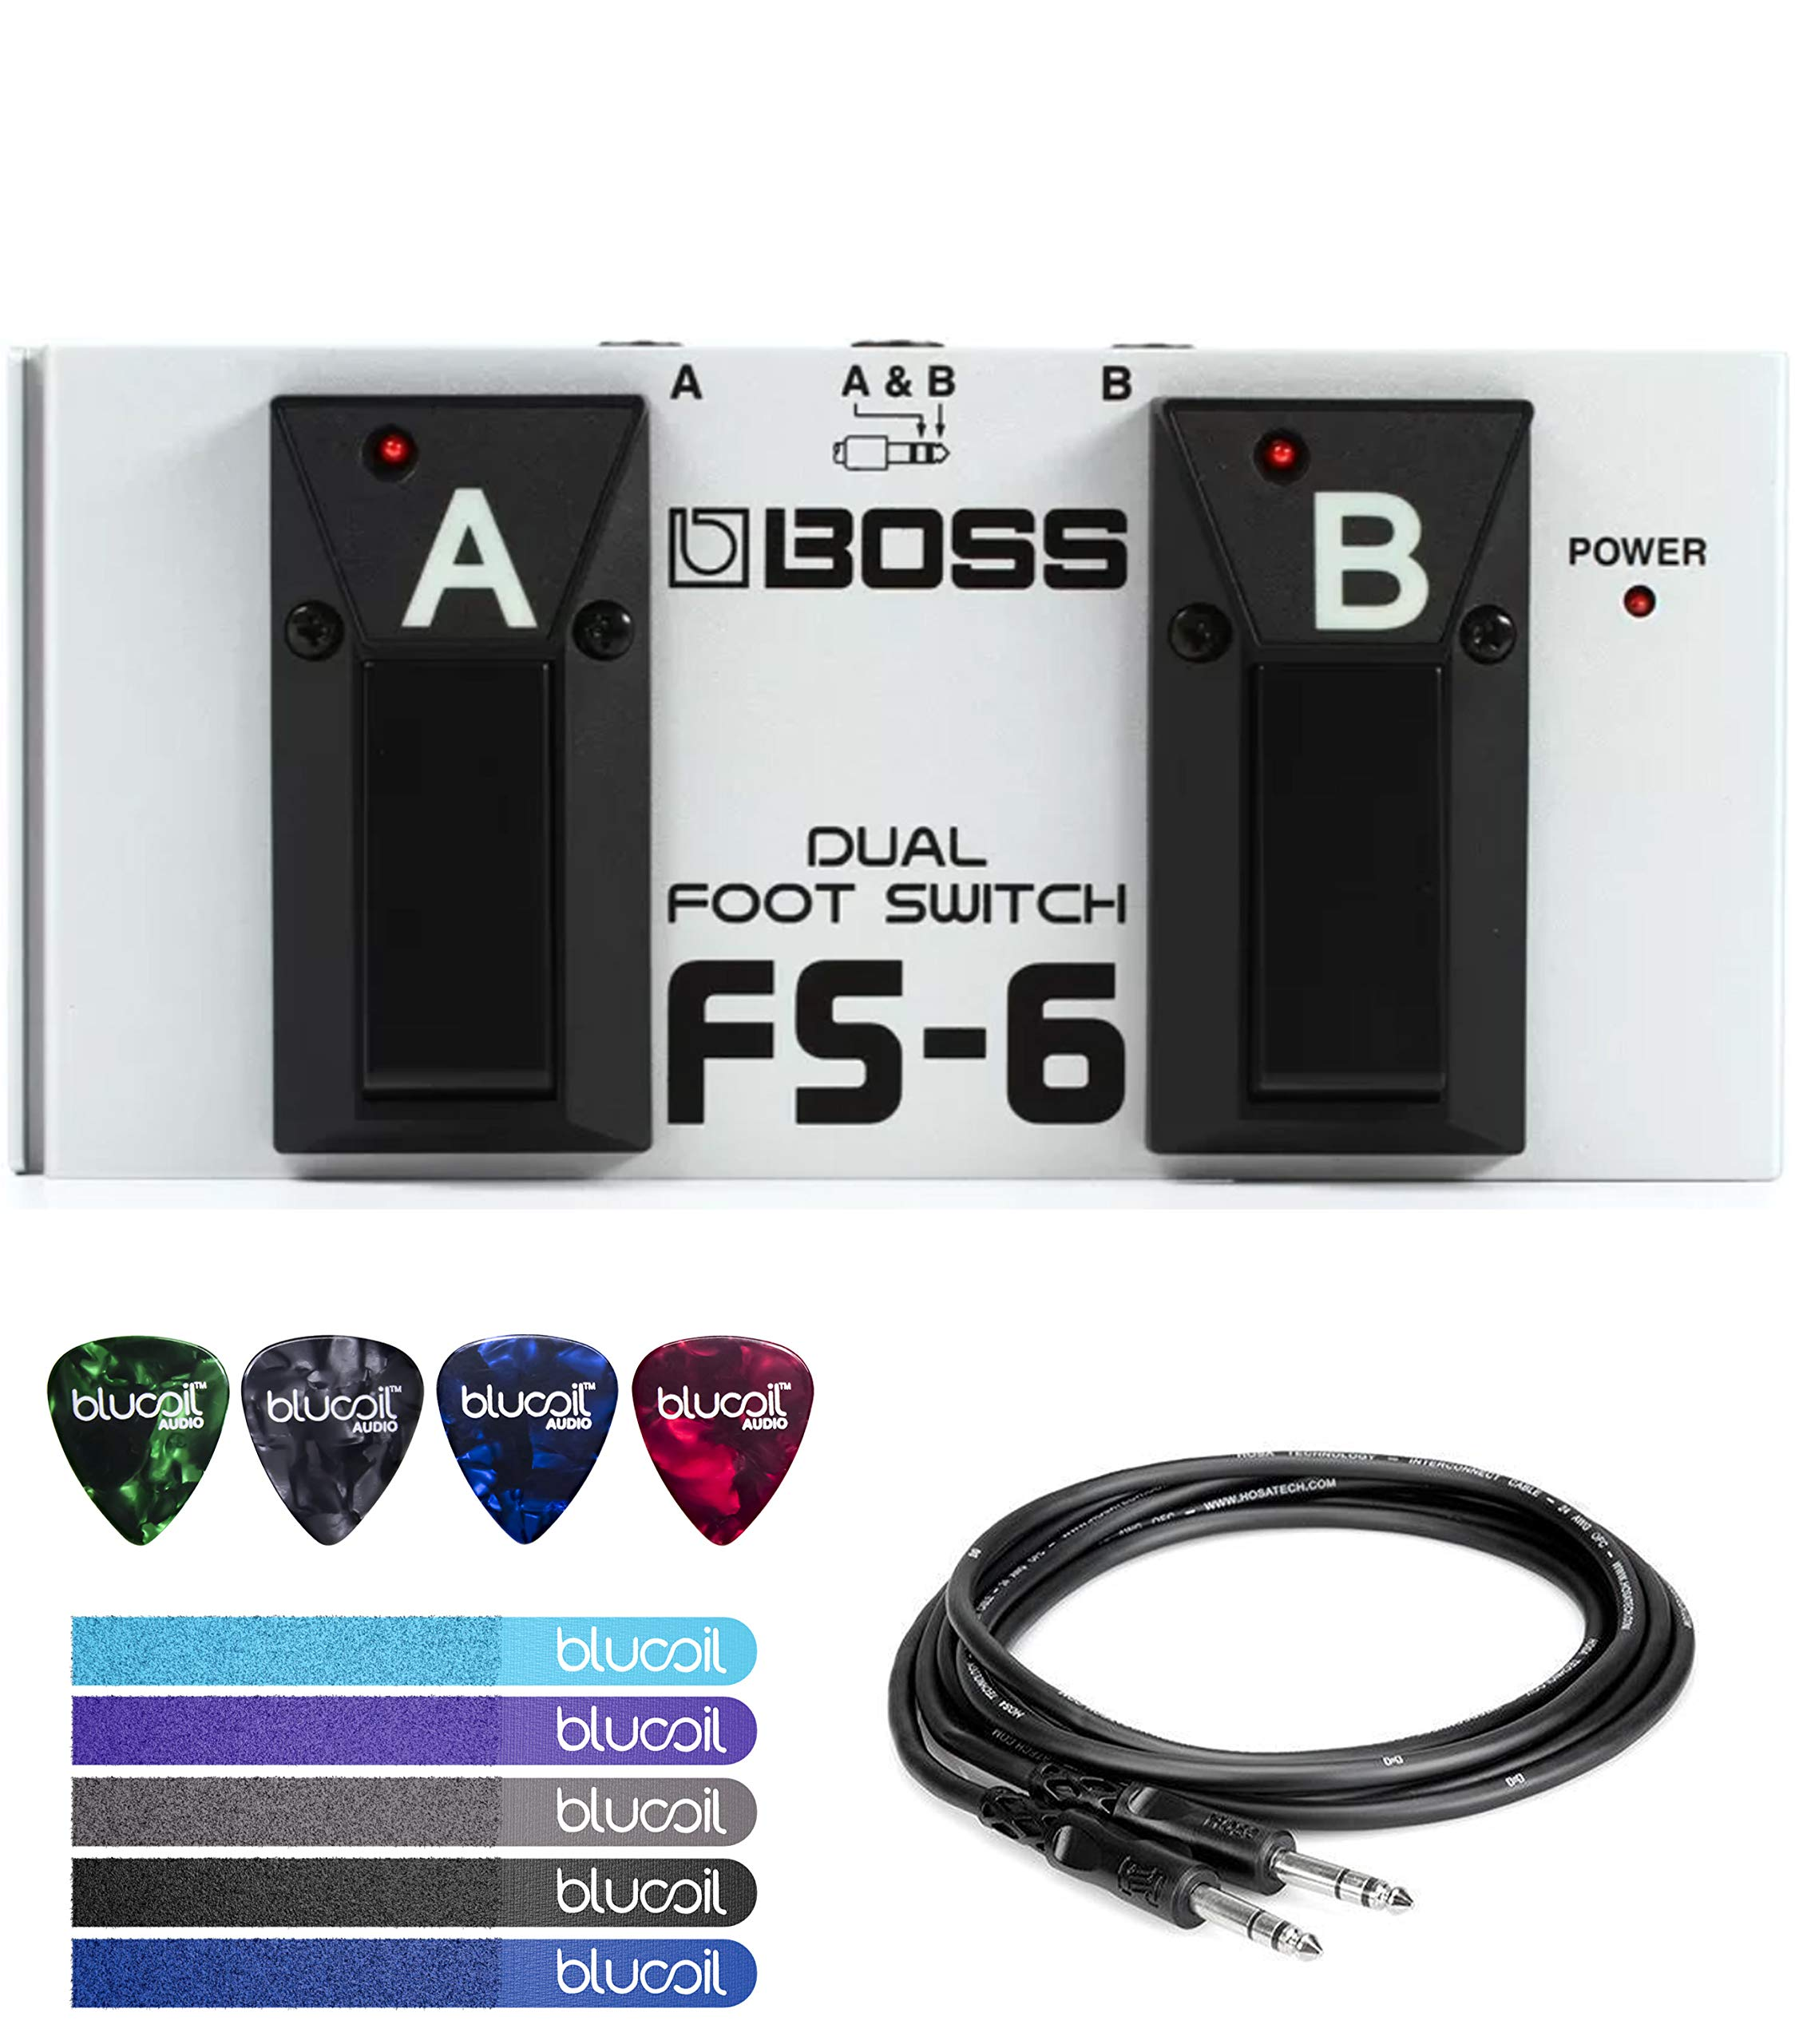 BOSS FS-6 Dual Latch and Momentary Foot Switch Pedal Bundle with 10-FT 1/4-Inch Male to Male Cable, Blucoil 5-Pack of Reusable Cable Ties, and 4-Pack of Celluloid Guitar Picks